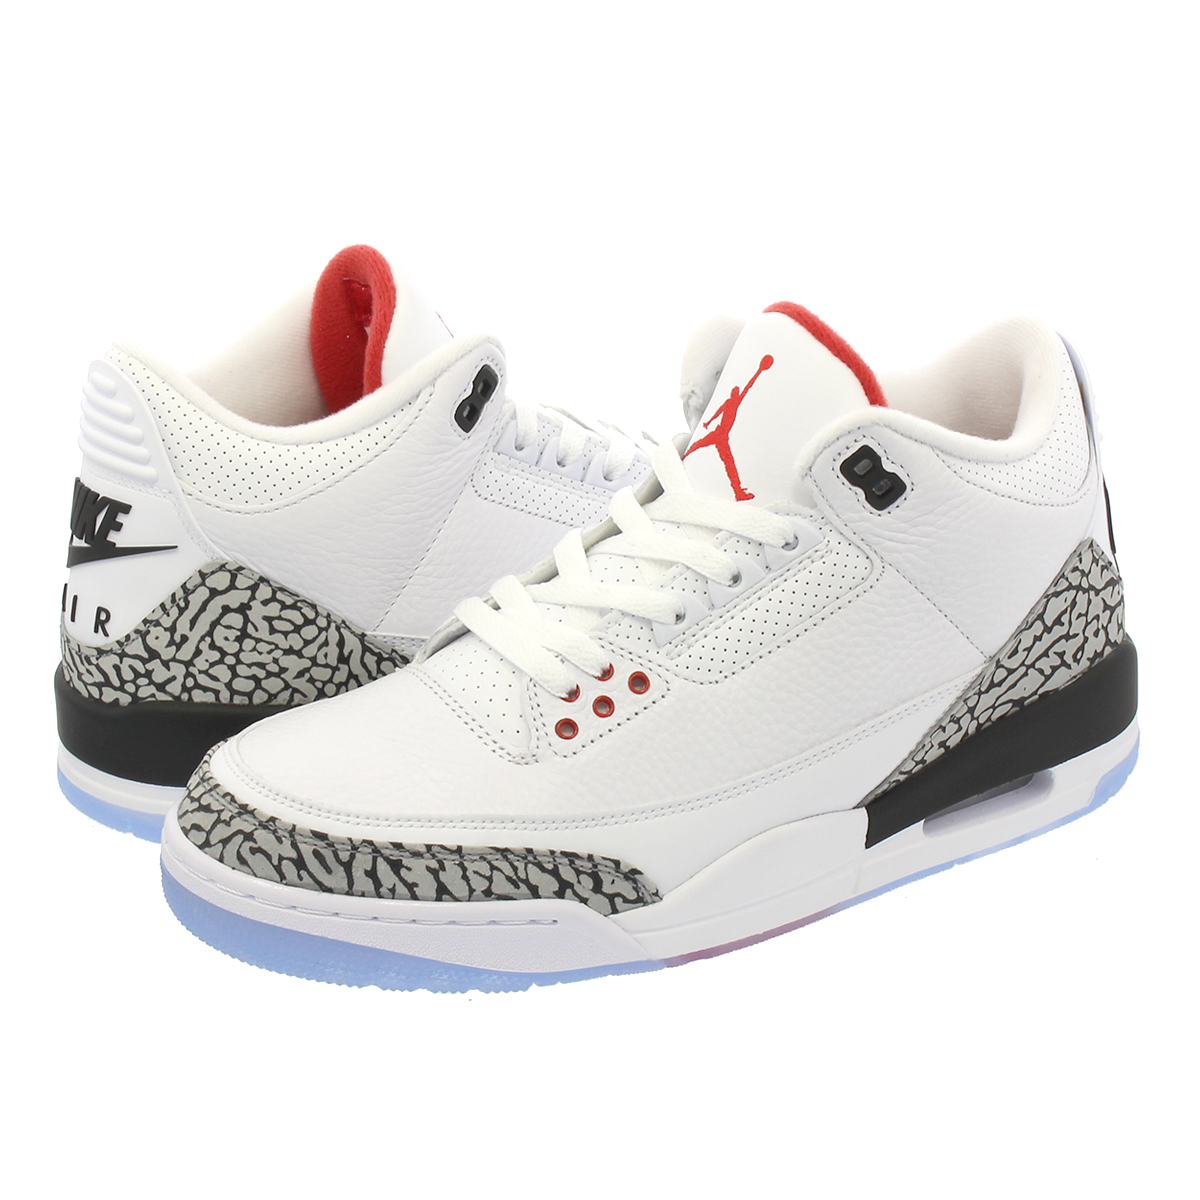 best sneakers a6bde 96dfe NIKE AIR JORDAN 3 RETRO NRG Nike Air Jordan 3 nostalgic WHITE FIRE RED CEMENT  GREY BLACK